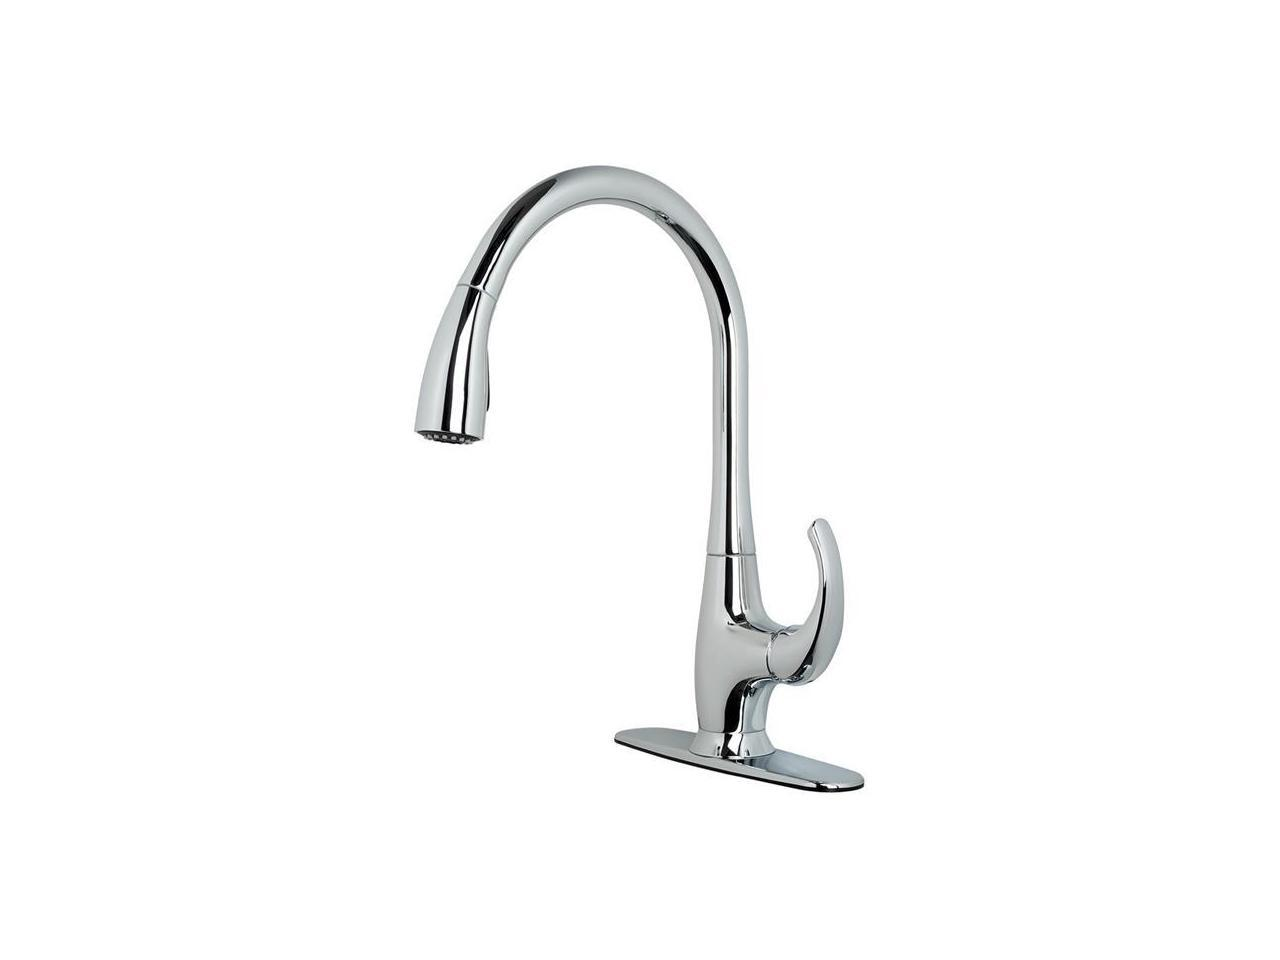 Ultra Faucets Uf13803 15 8 X 9 5 In Stainless Steel Single Handle Kitchen Faucet With Pull Down Spray Newegg Com